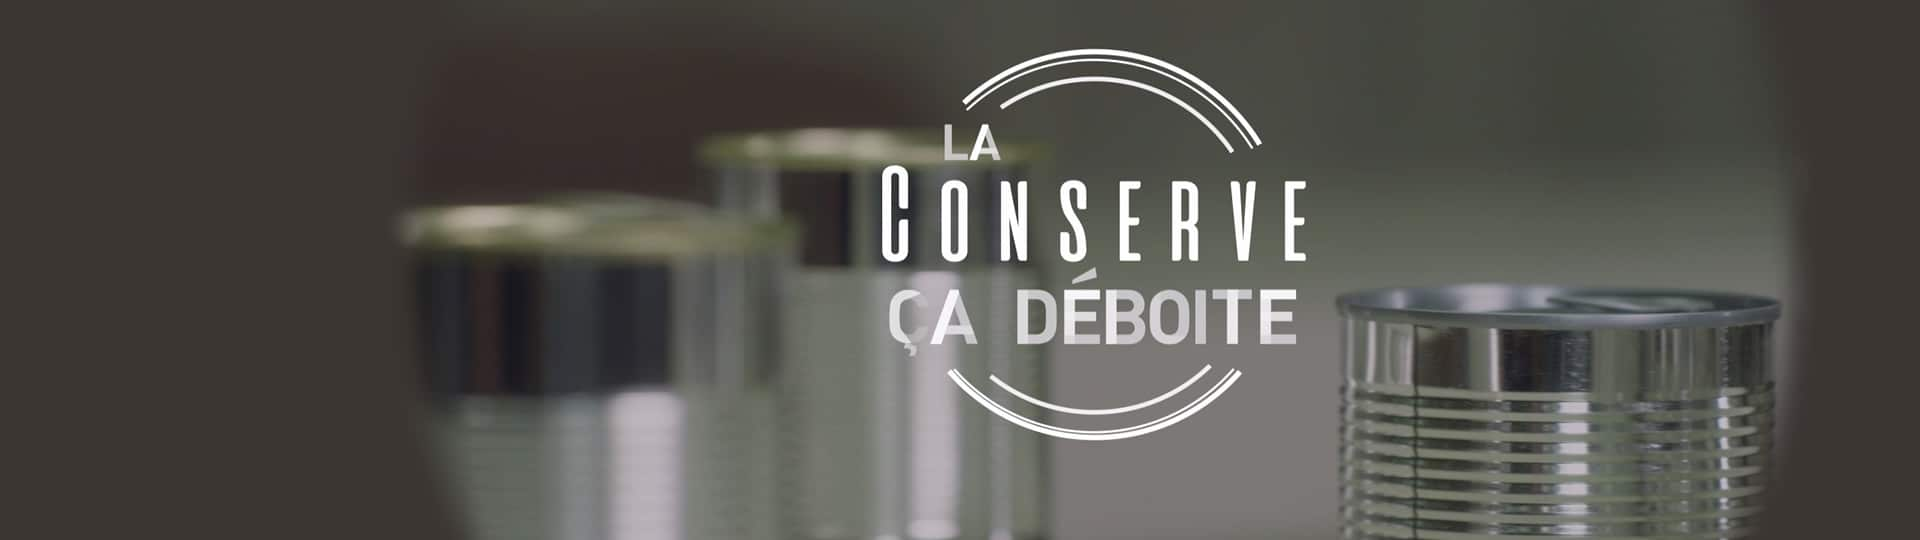 La collective de la conserve lance sa nouvelle campagne de communication à l'intention des 18-34 ans